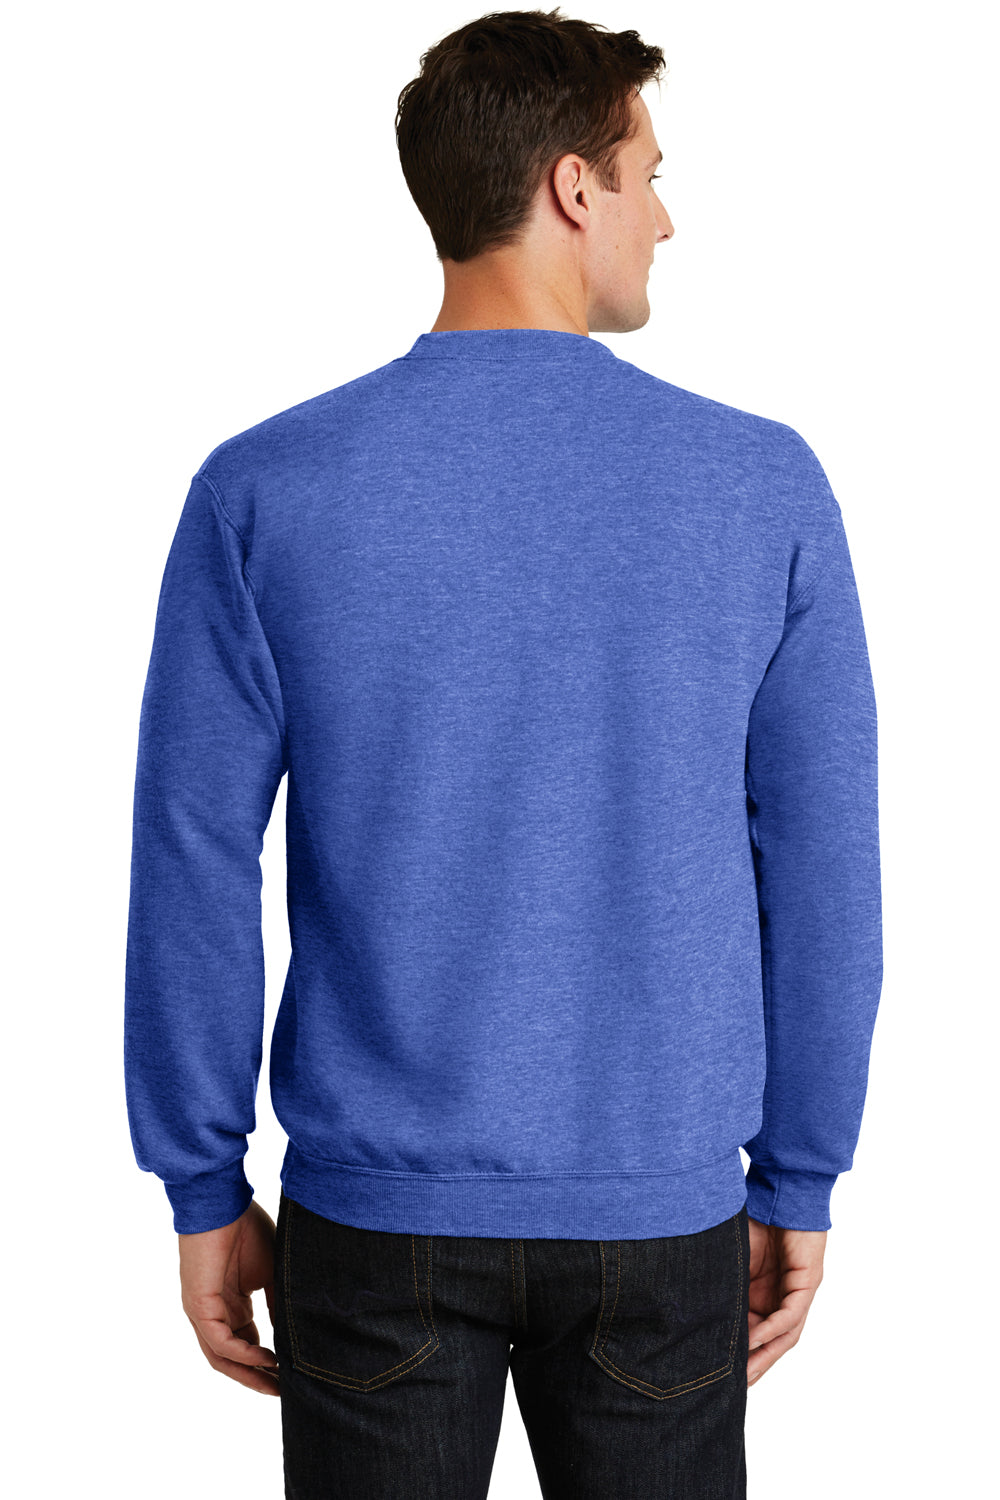 Port & Company PC78 Mens Core Fleece Crewneck Sweatshirt Heather Royal Blue Back